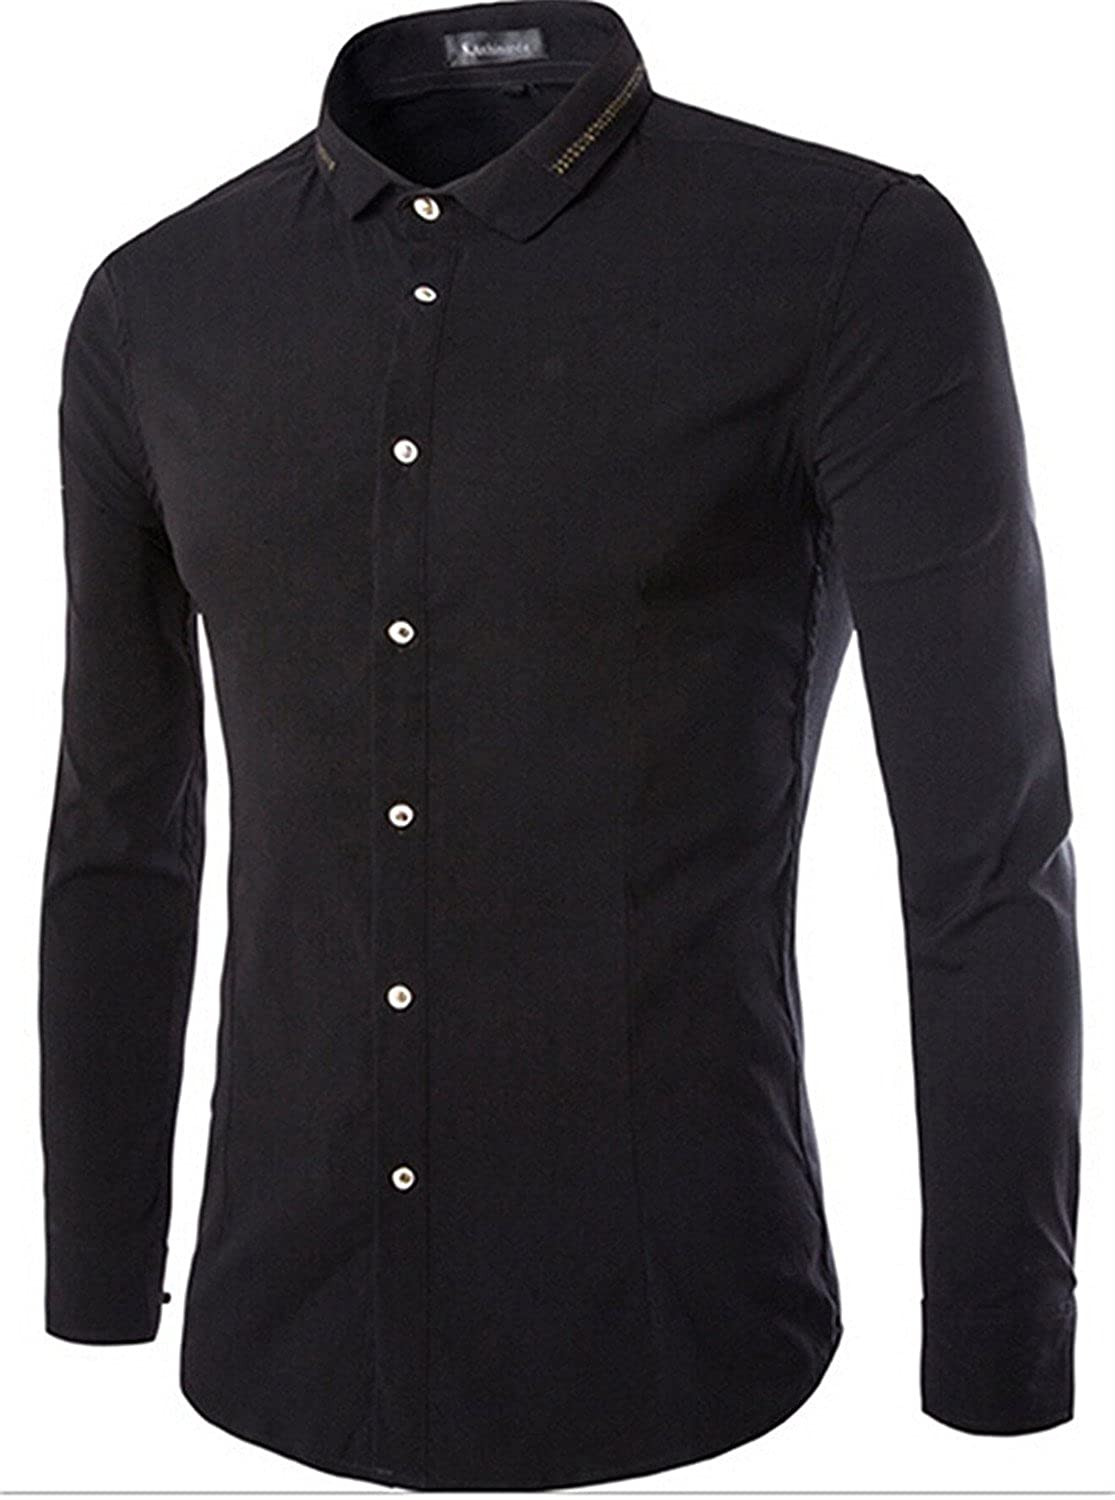 KDHJJOLY New Men Vouge Solid Autumn Slim Button-Up Shirts